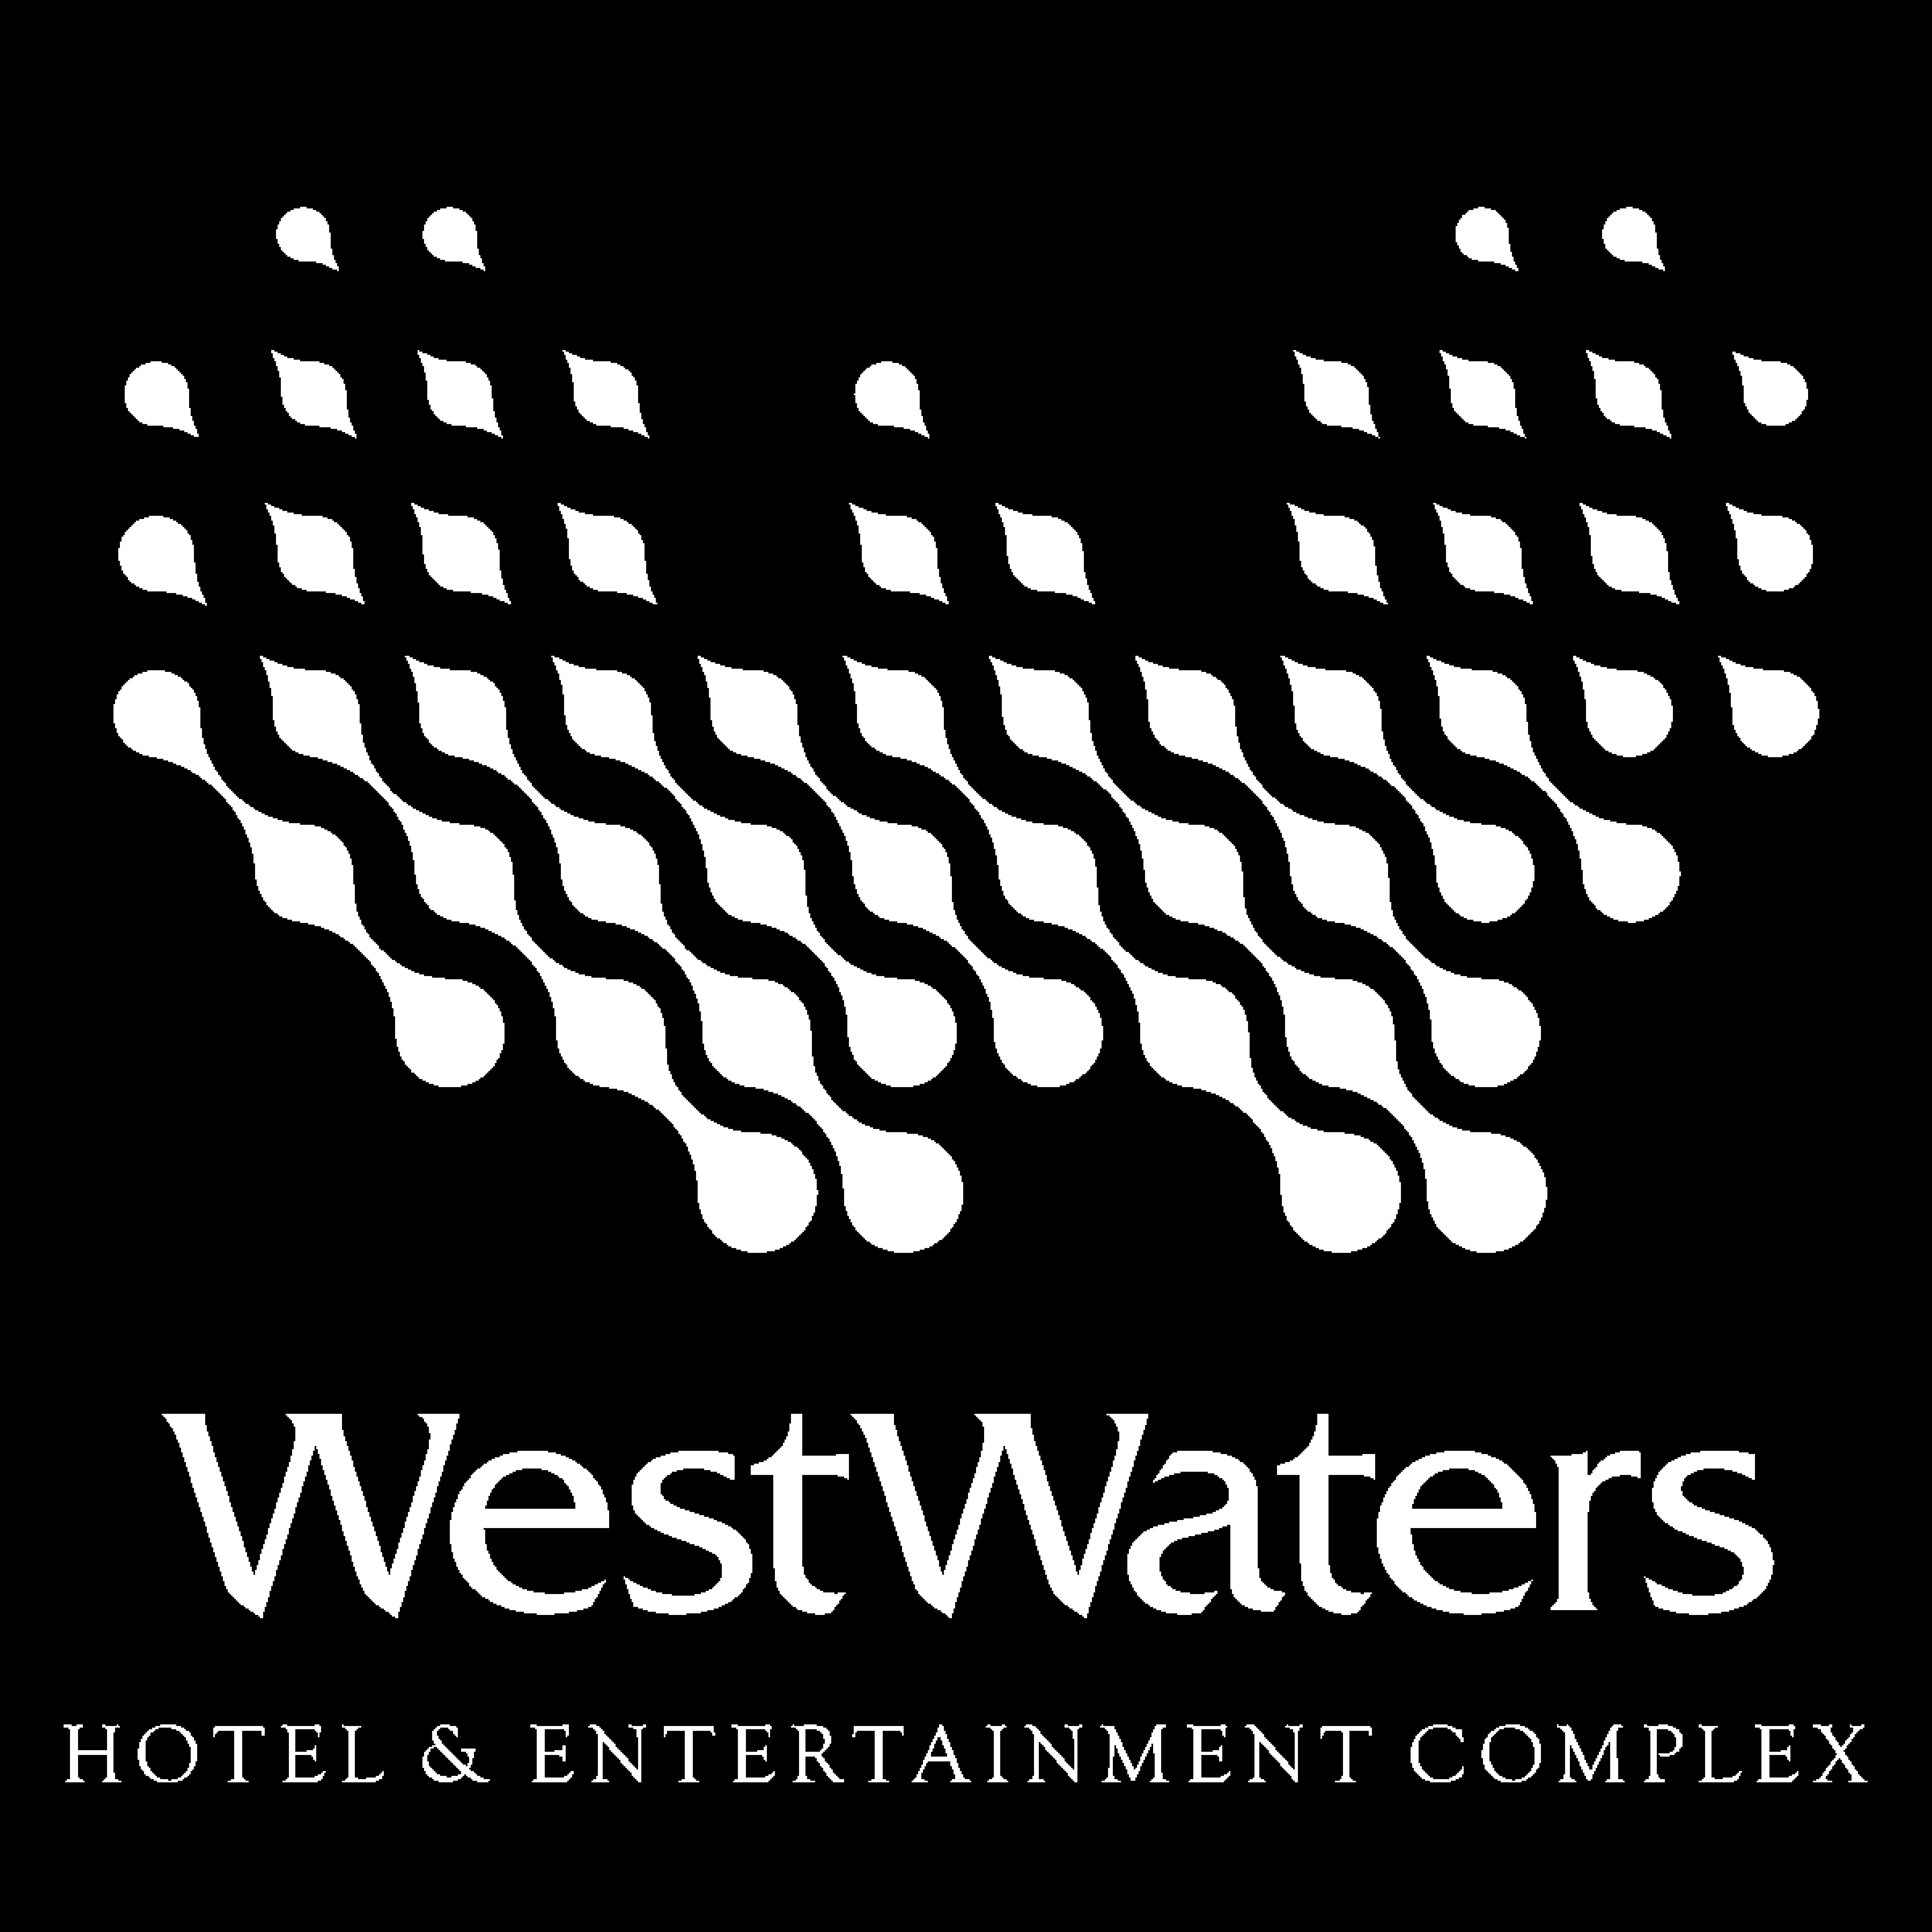 WestWaters Hotel and Entertainment